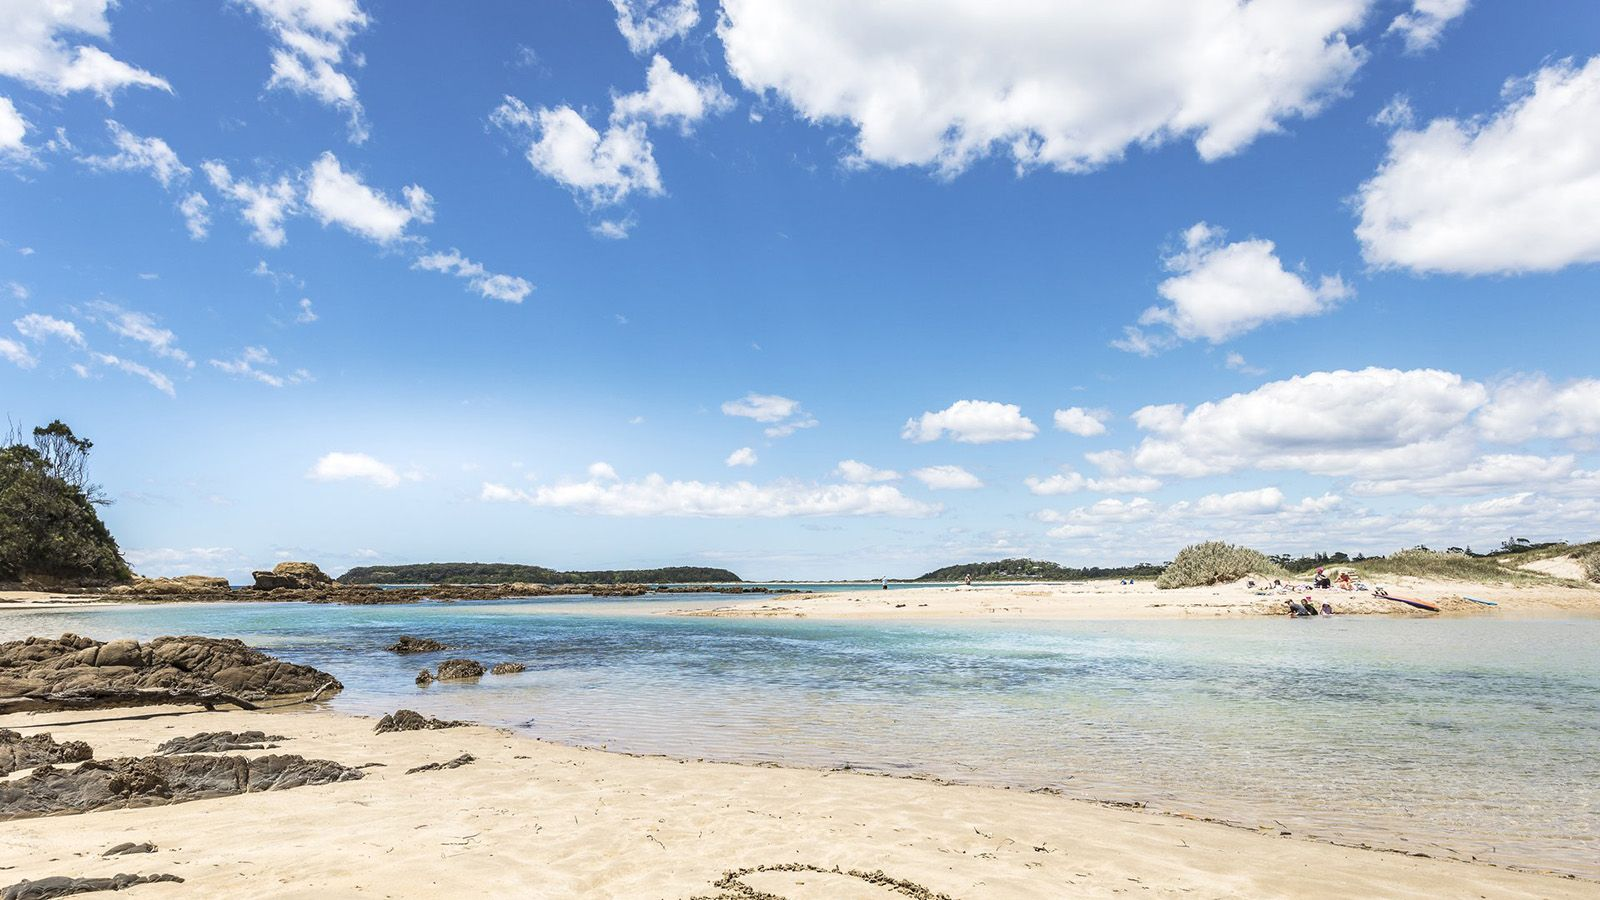 The inlet at Candlagan Creek near Broulee on a sunny day banner image